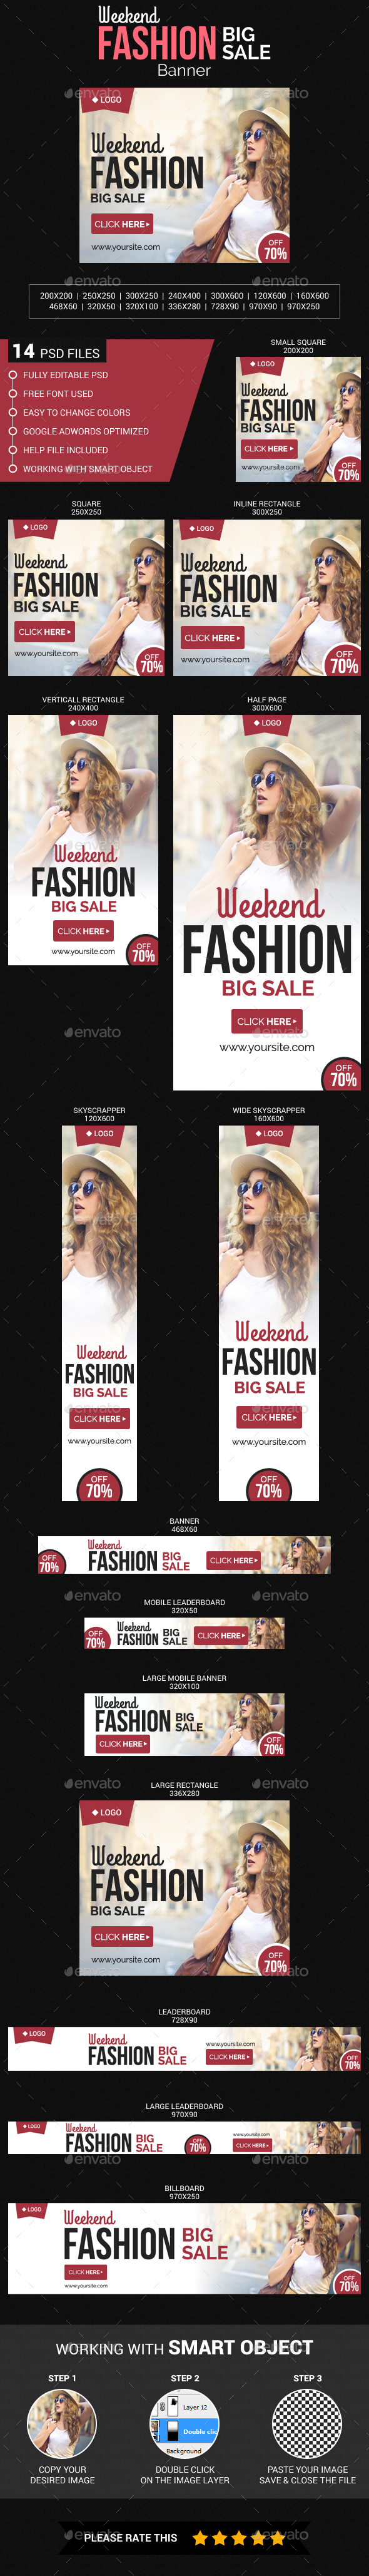 Weekend Fashion Sale - Banners & Ads Web Elements